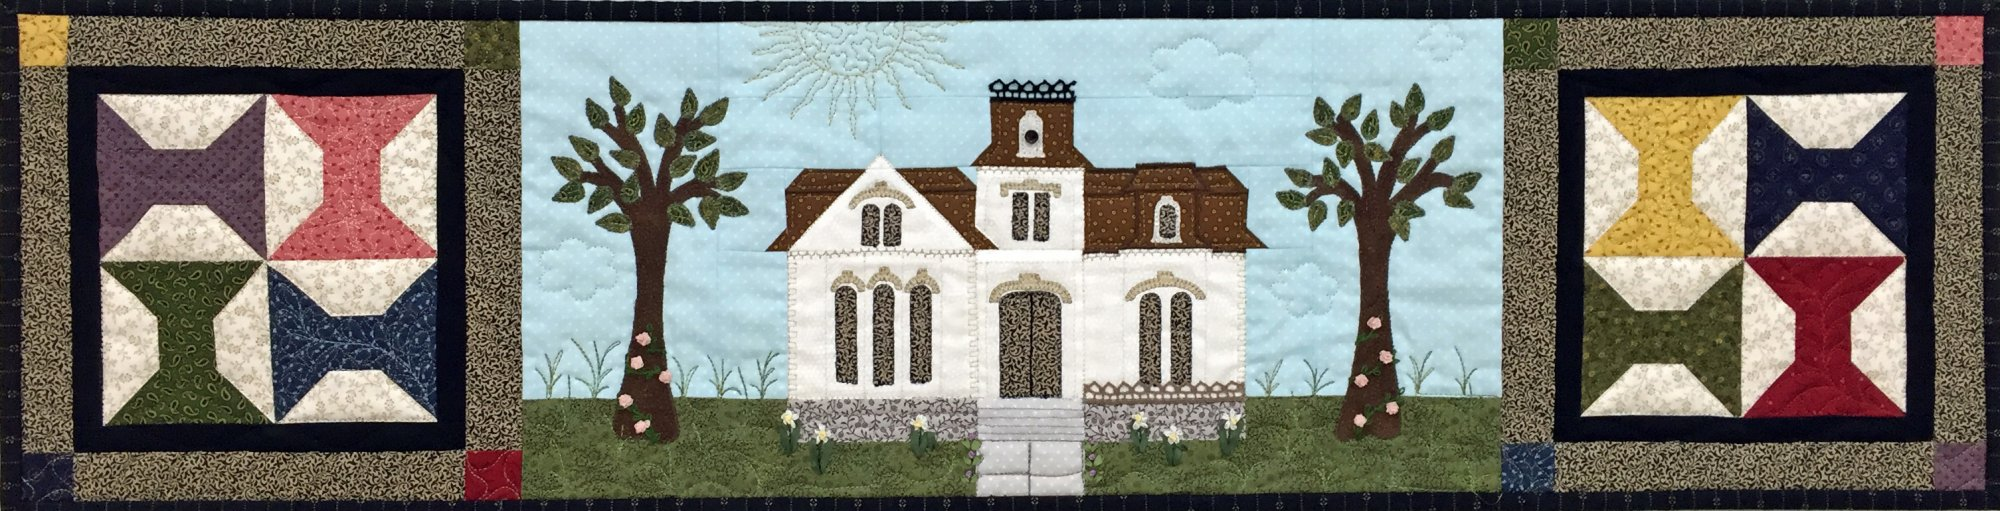 Row by Row 2016 Designing Women House Kit with Pattern